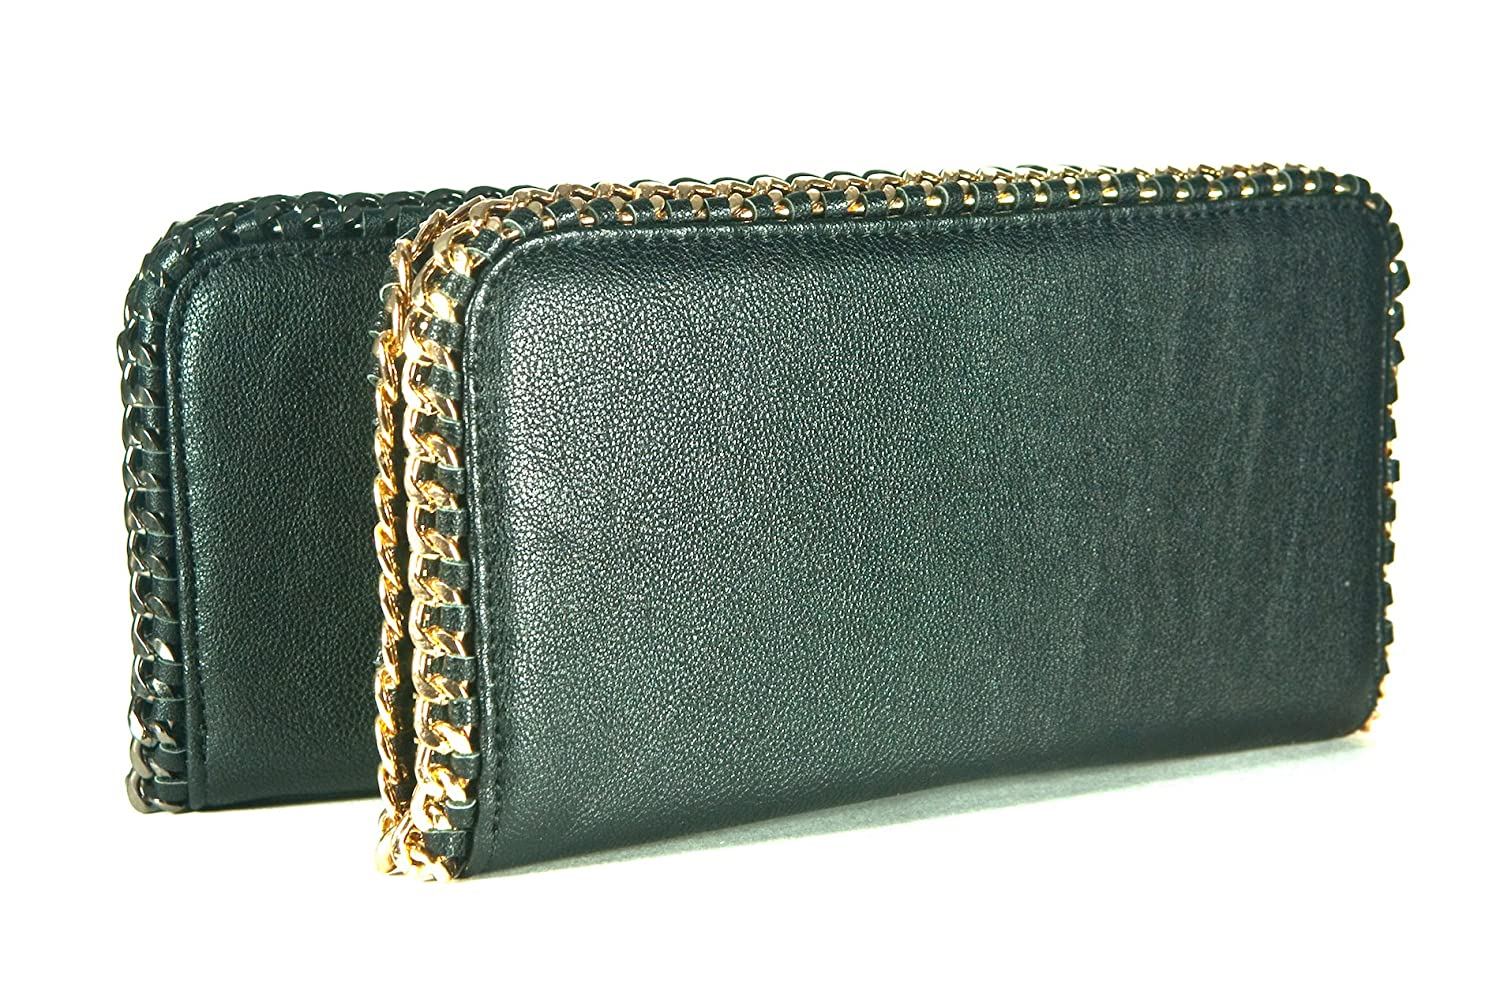 BLACK PLEATHER CLUTCH/WALLET WITH GOLD CHAIN ACCENT OR BLACK CHAIN ACCENT